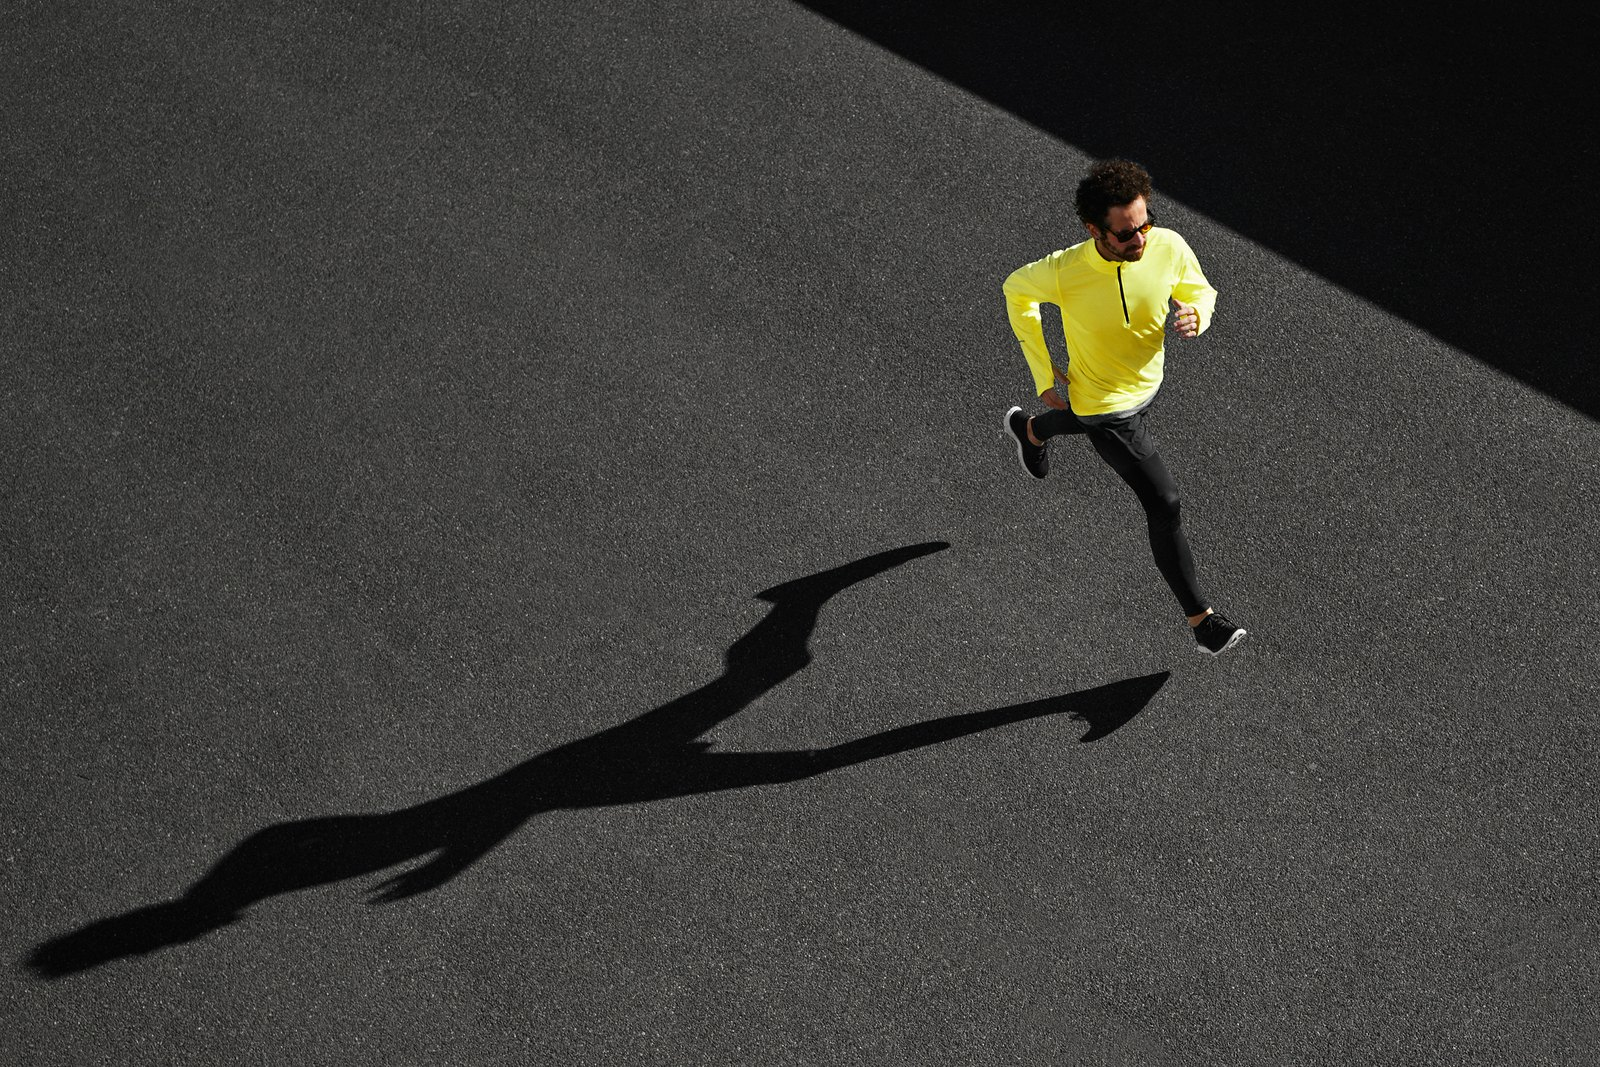 Get running and compete wherever you are with Virtual Runner